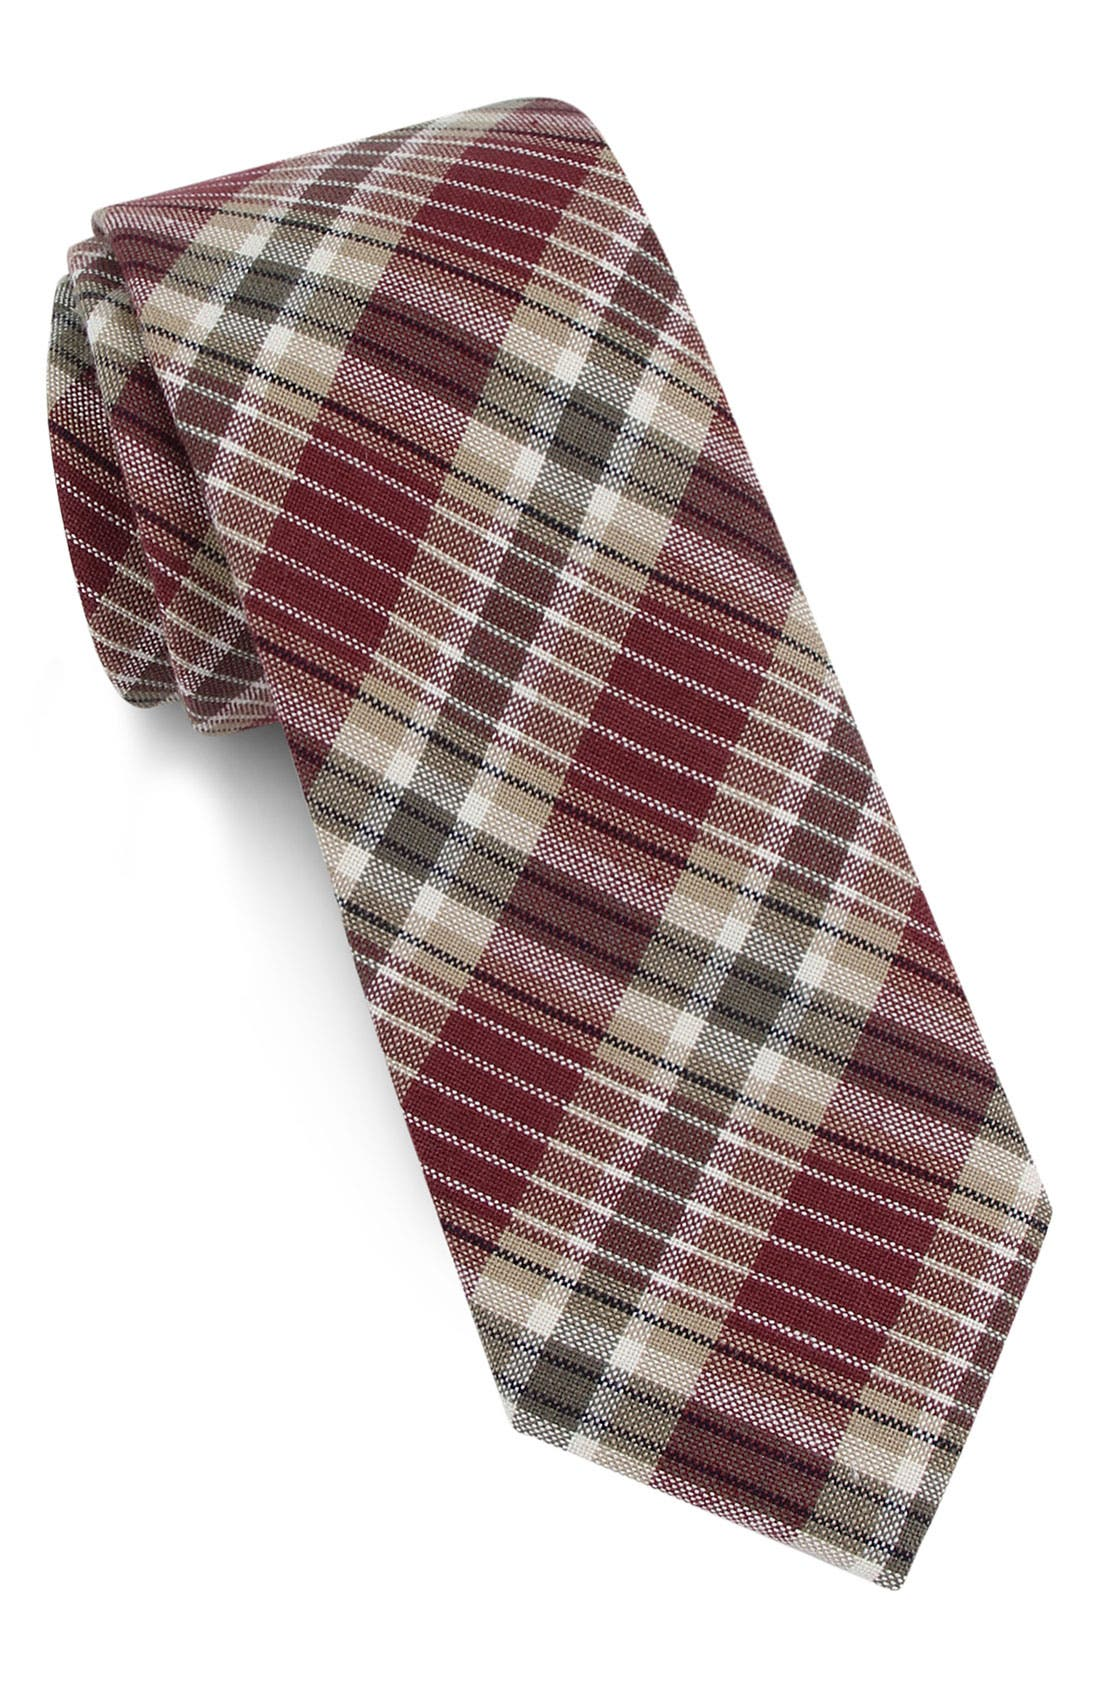 Alternate Image 1 Selected - 1901 Plaid Skinny Tie